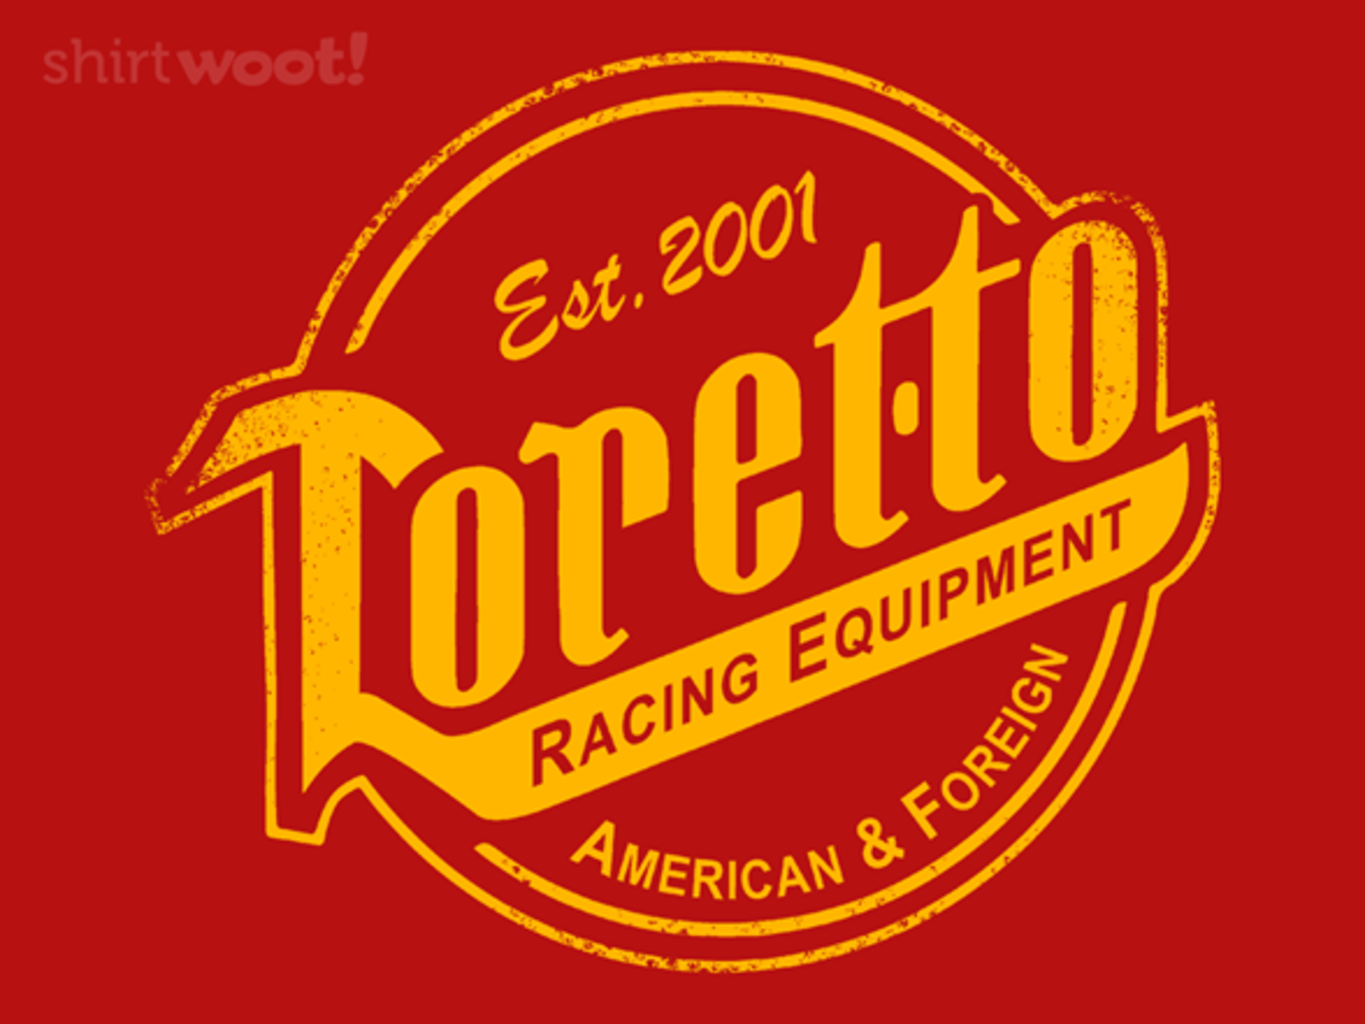 Woot!: Toretto Racing